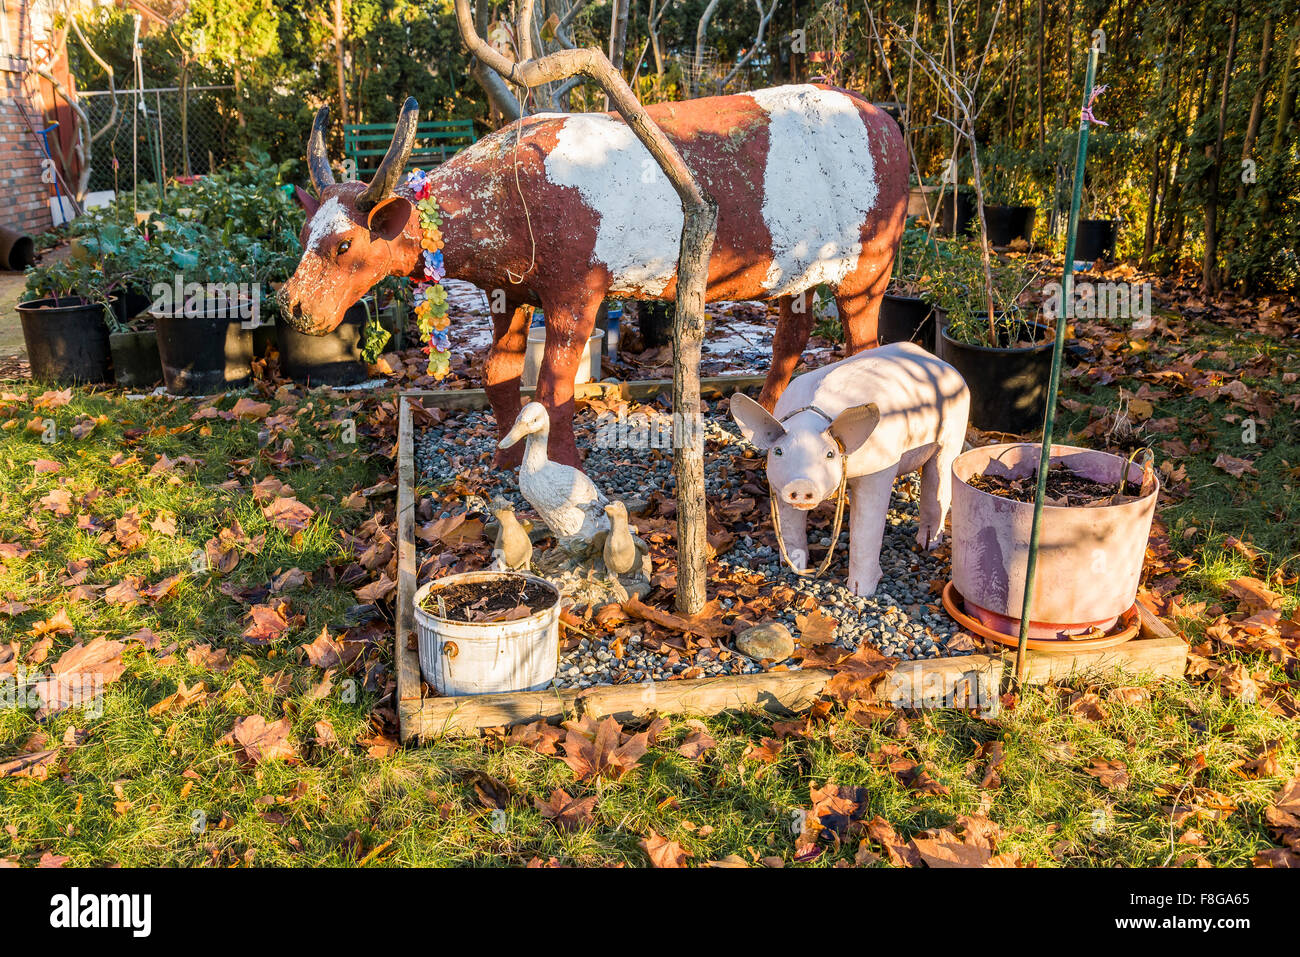 backyard cow with garland and ducks and pig - Stock Image